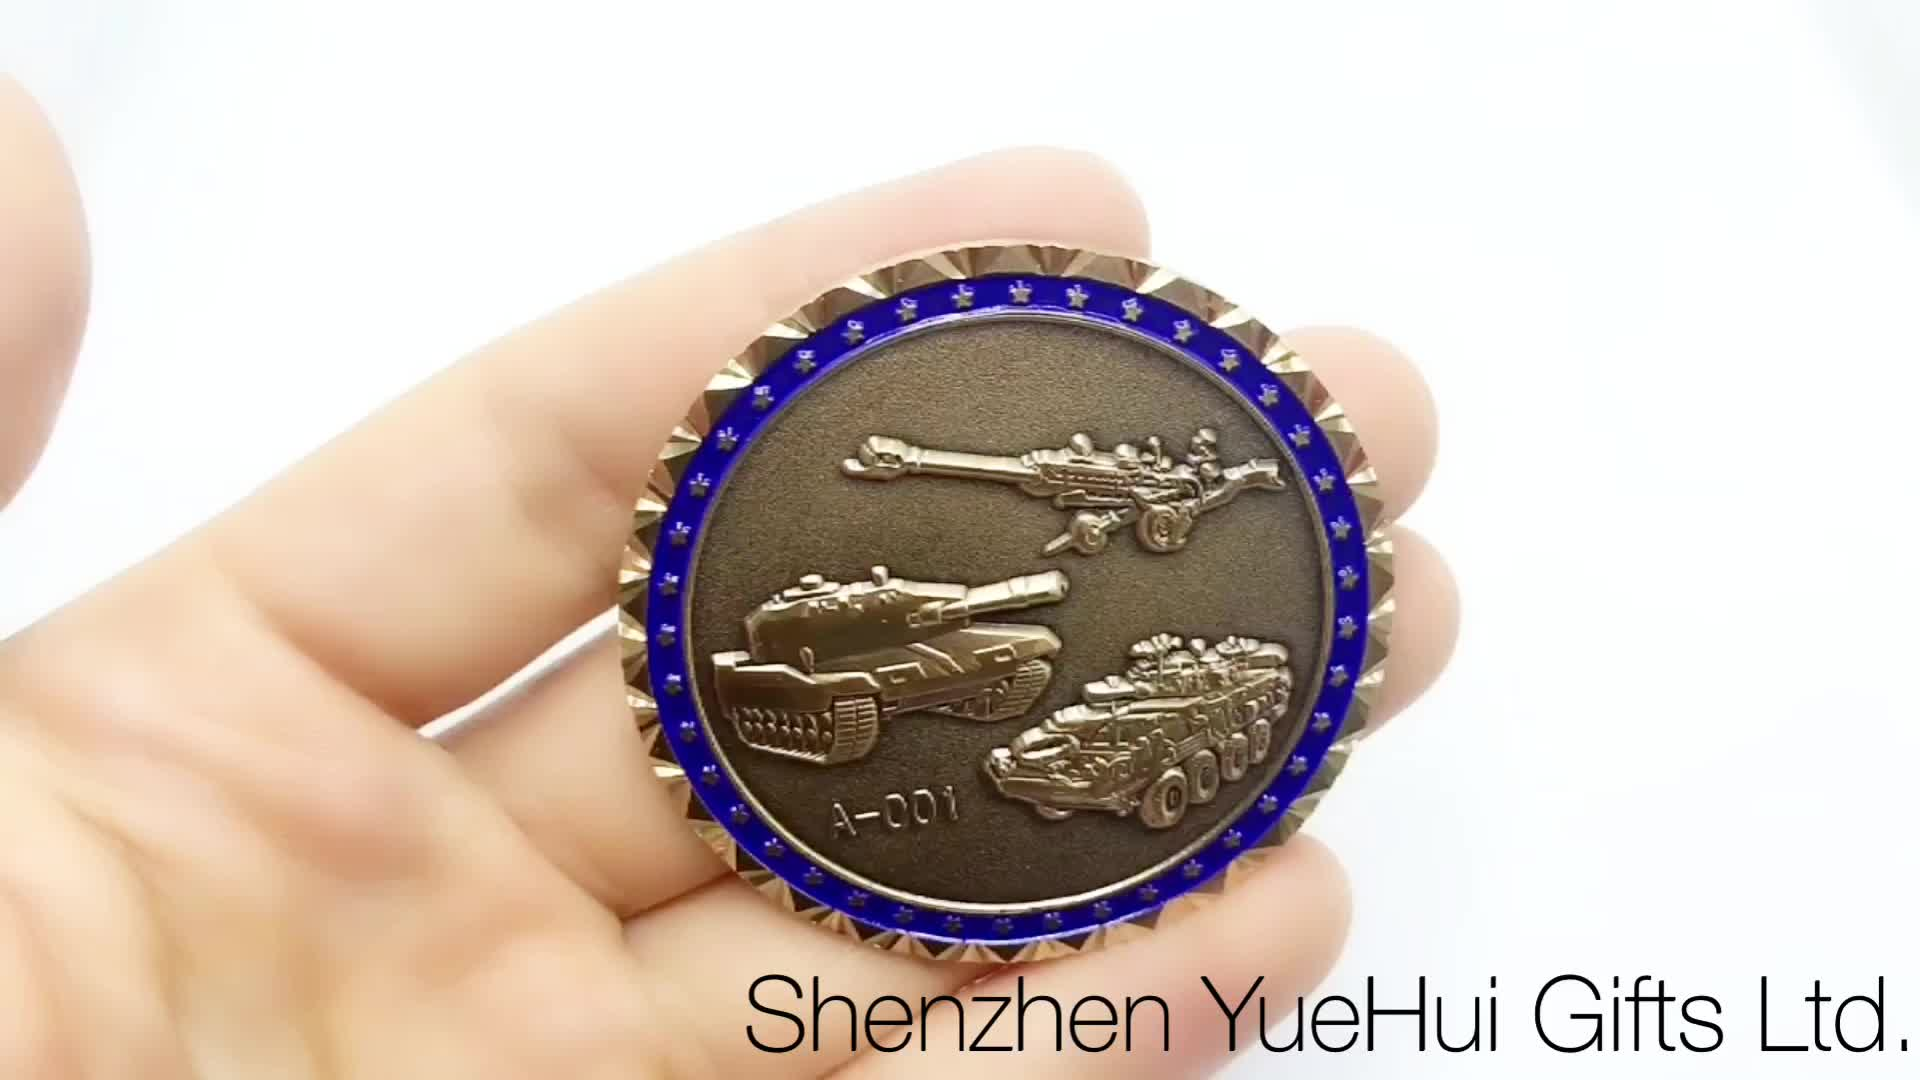 Custom copper souvenir force group challenged coin with engraving